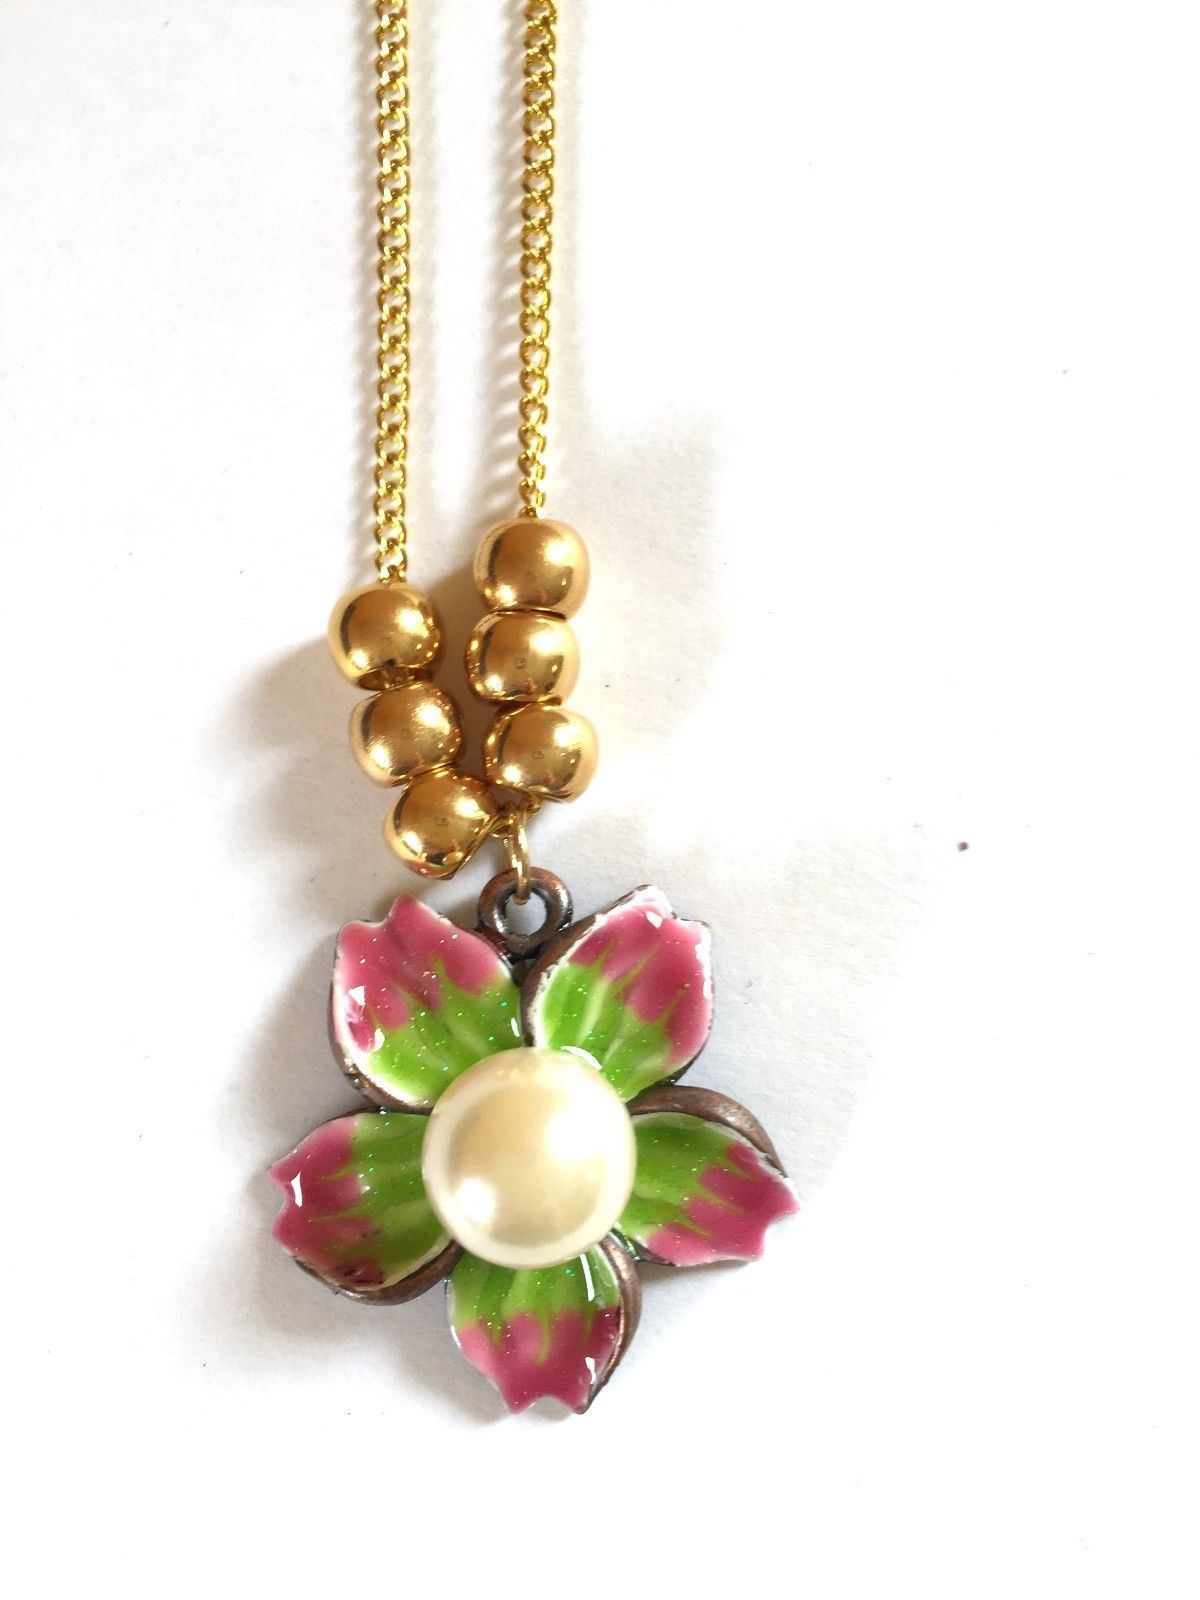 Enamel Flower Charm Necklace 17 inches Goldtone with Ball Accents